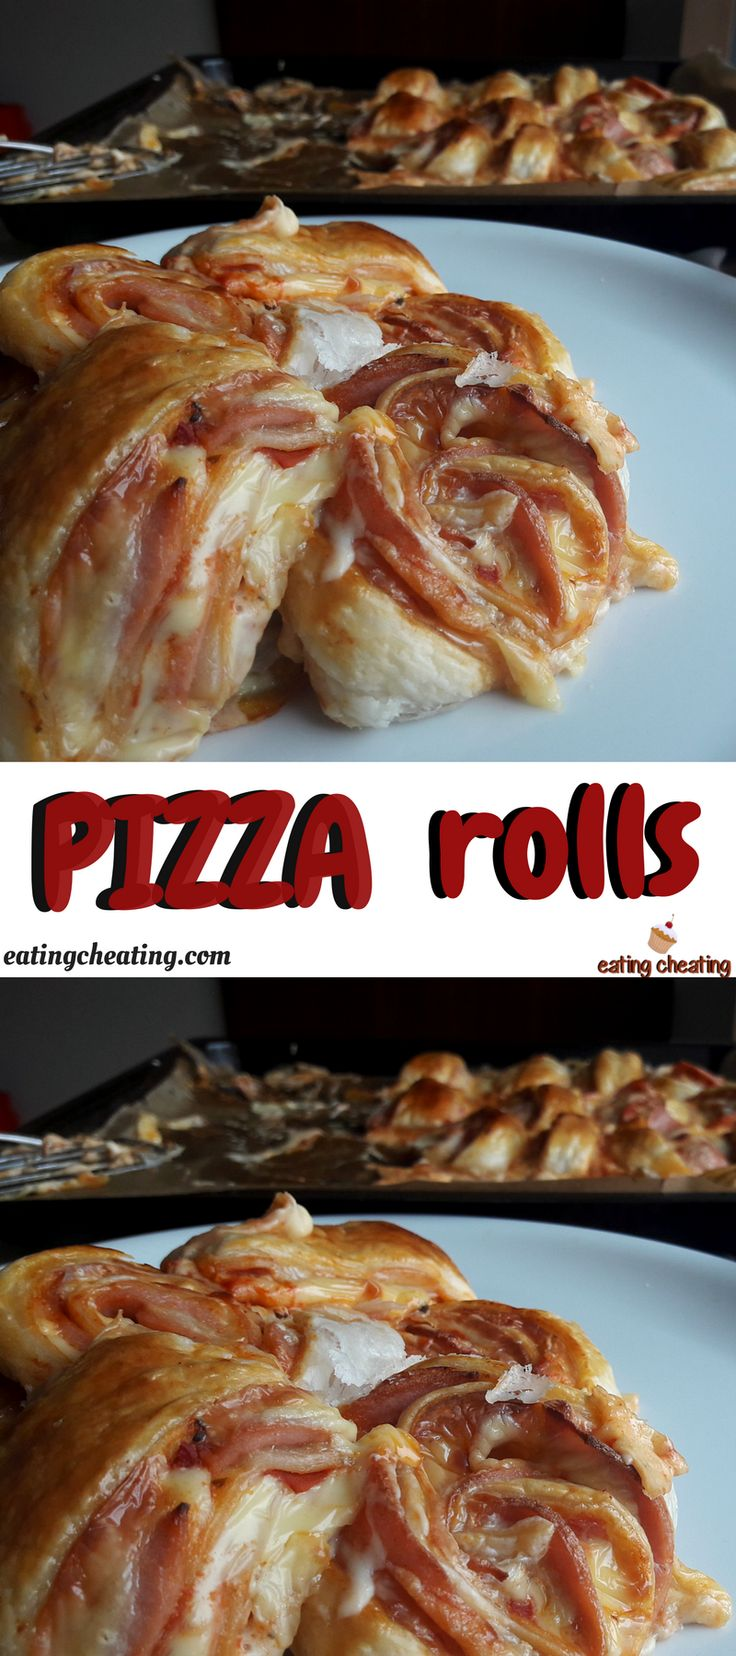 Who love pizza? I think that everybody love pizza. That is why I made for this post delicious pizza rolls. This pizza rolls recipe is easy to prepare and quick to make. Great recipe for Christmas time or for the New Year! Pizza can be make in so many different ways and forms. And this pizza rolls are very interesting and they look very cool!